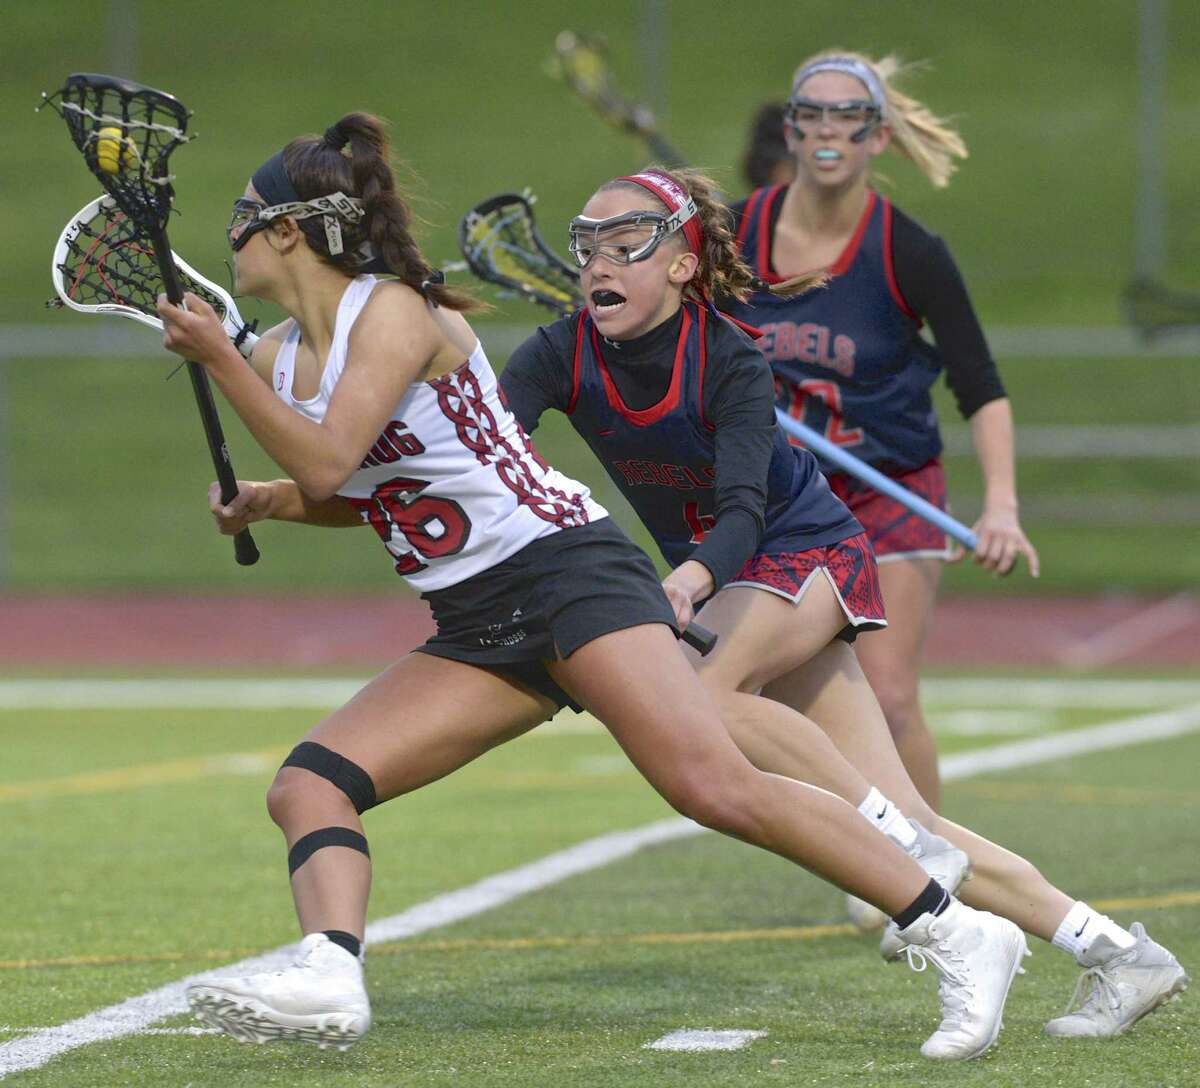 Pomperaug's Camden Frissora (26) tries to go around New Fairfield's Jordan Siemonson (4) in the girls lacrosse game between New Fairfield and Pomperaug high schools, Thursday, May 9, 2019, at Pomperaug High School, Southbury, Conn.